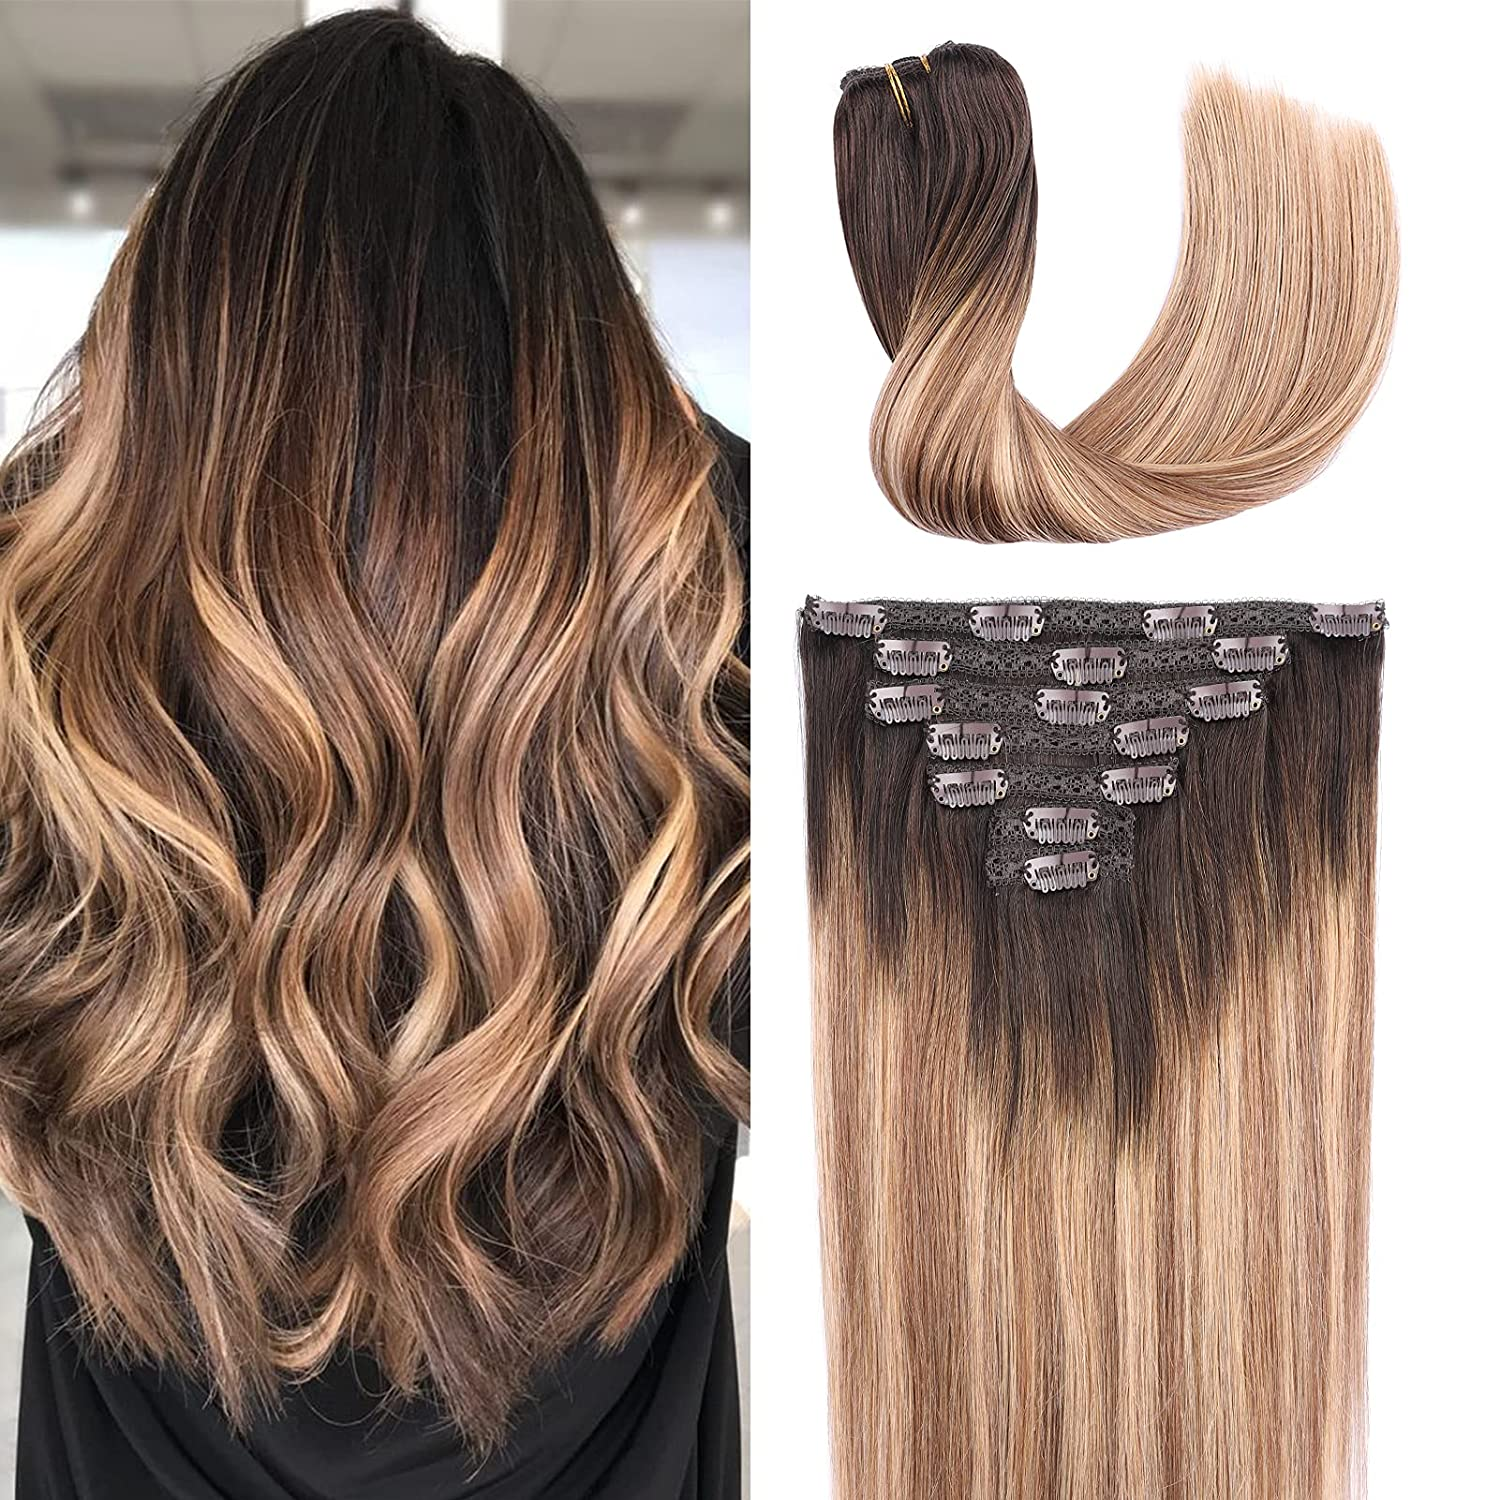 ChicFusion Clip in In a popularity Human Hair Extensions 7pcs inch Dark online shop 120g 24